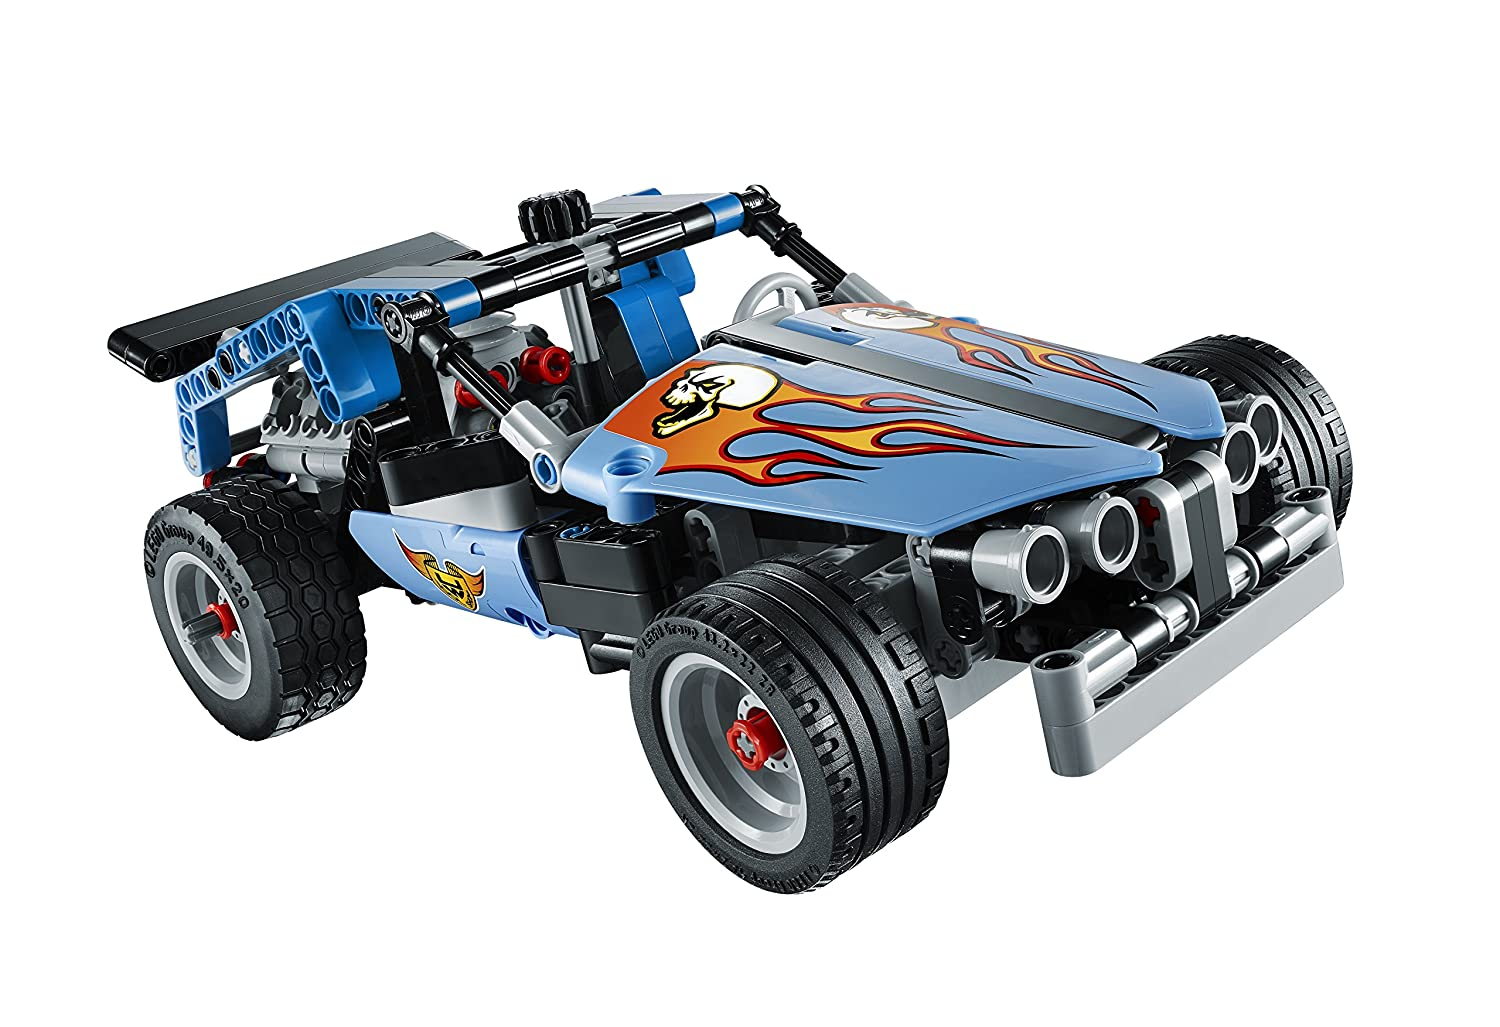 Amazon.com: LEGO Technic 42022 Hot Rod Model Kit: Toys & Games